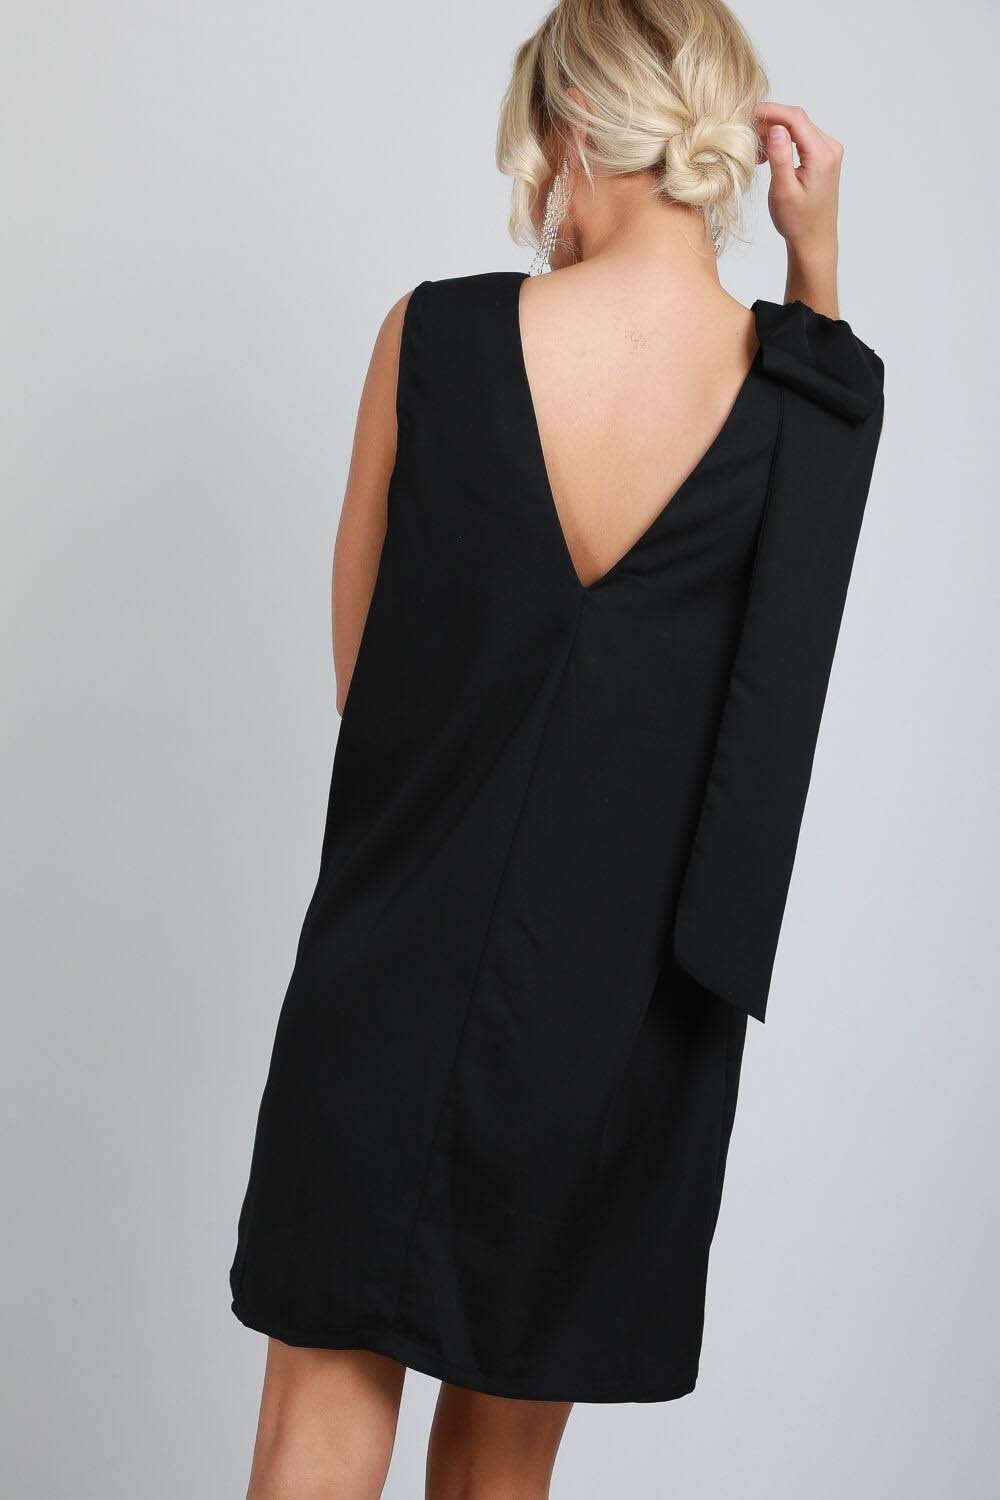 Bow Shoulder Black Sleeveless V Neck Shift Dress - bejealous-com